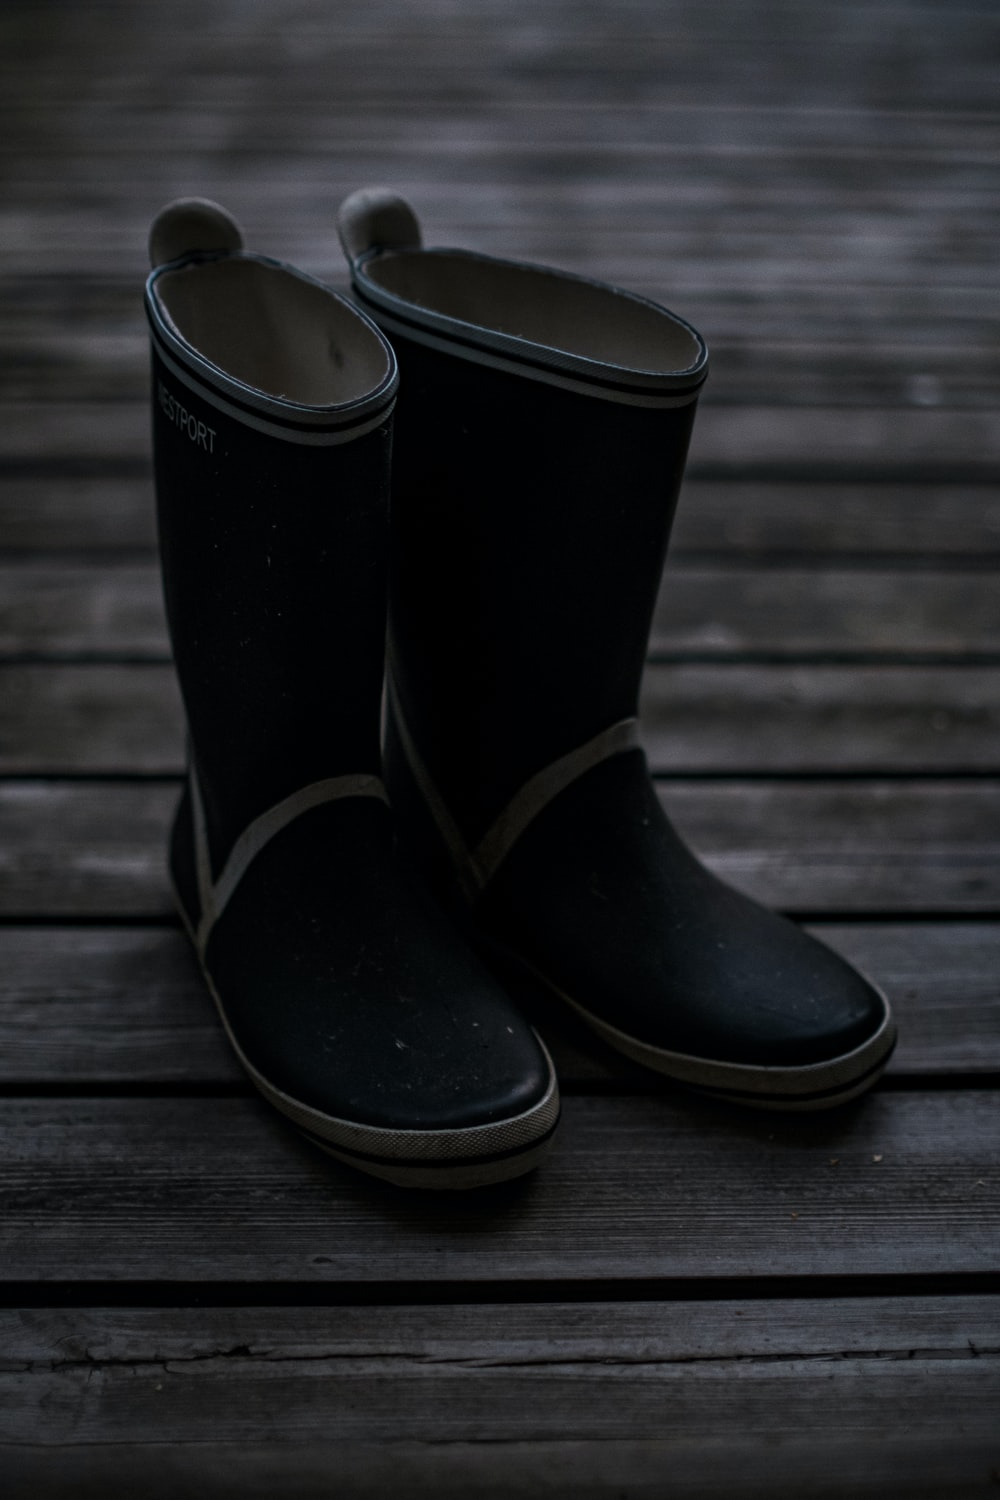 black and white leather boots on brown wooden floor